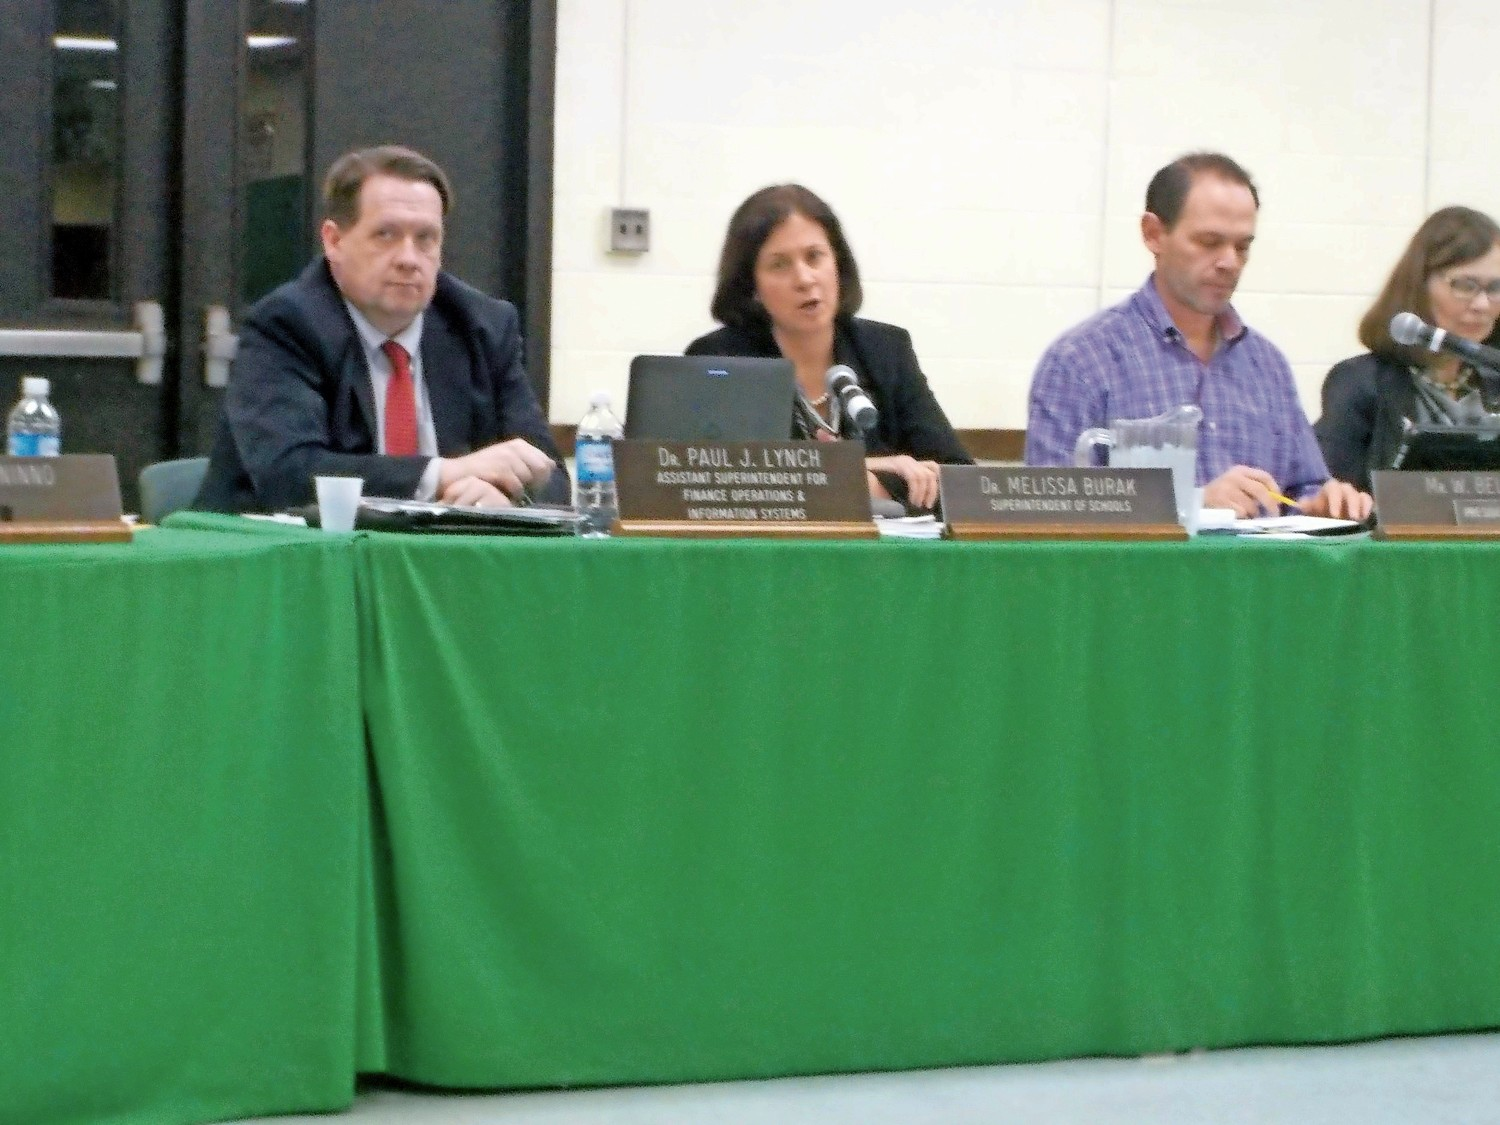 The Lynbrook Board of Education discussed Gov. Andrew Cuomo's executive order, which restores voting rights to individuals on parole.